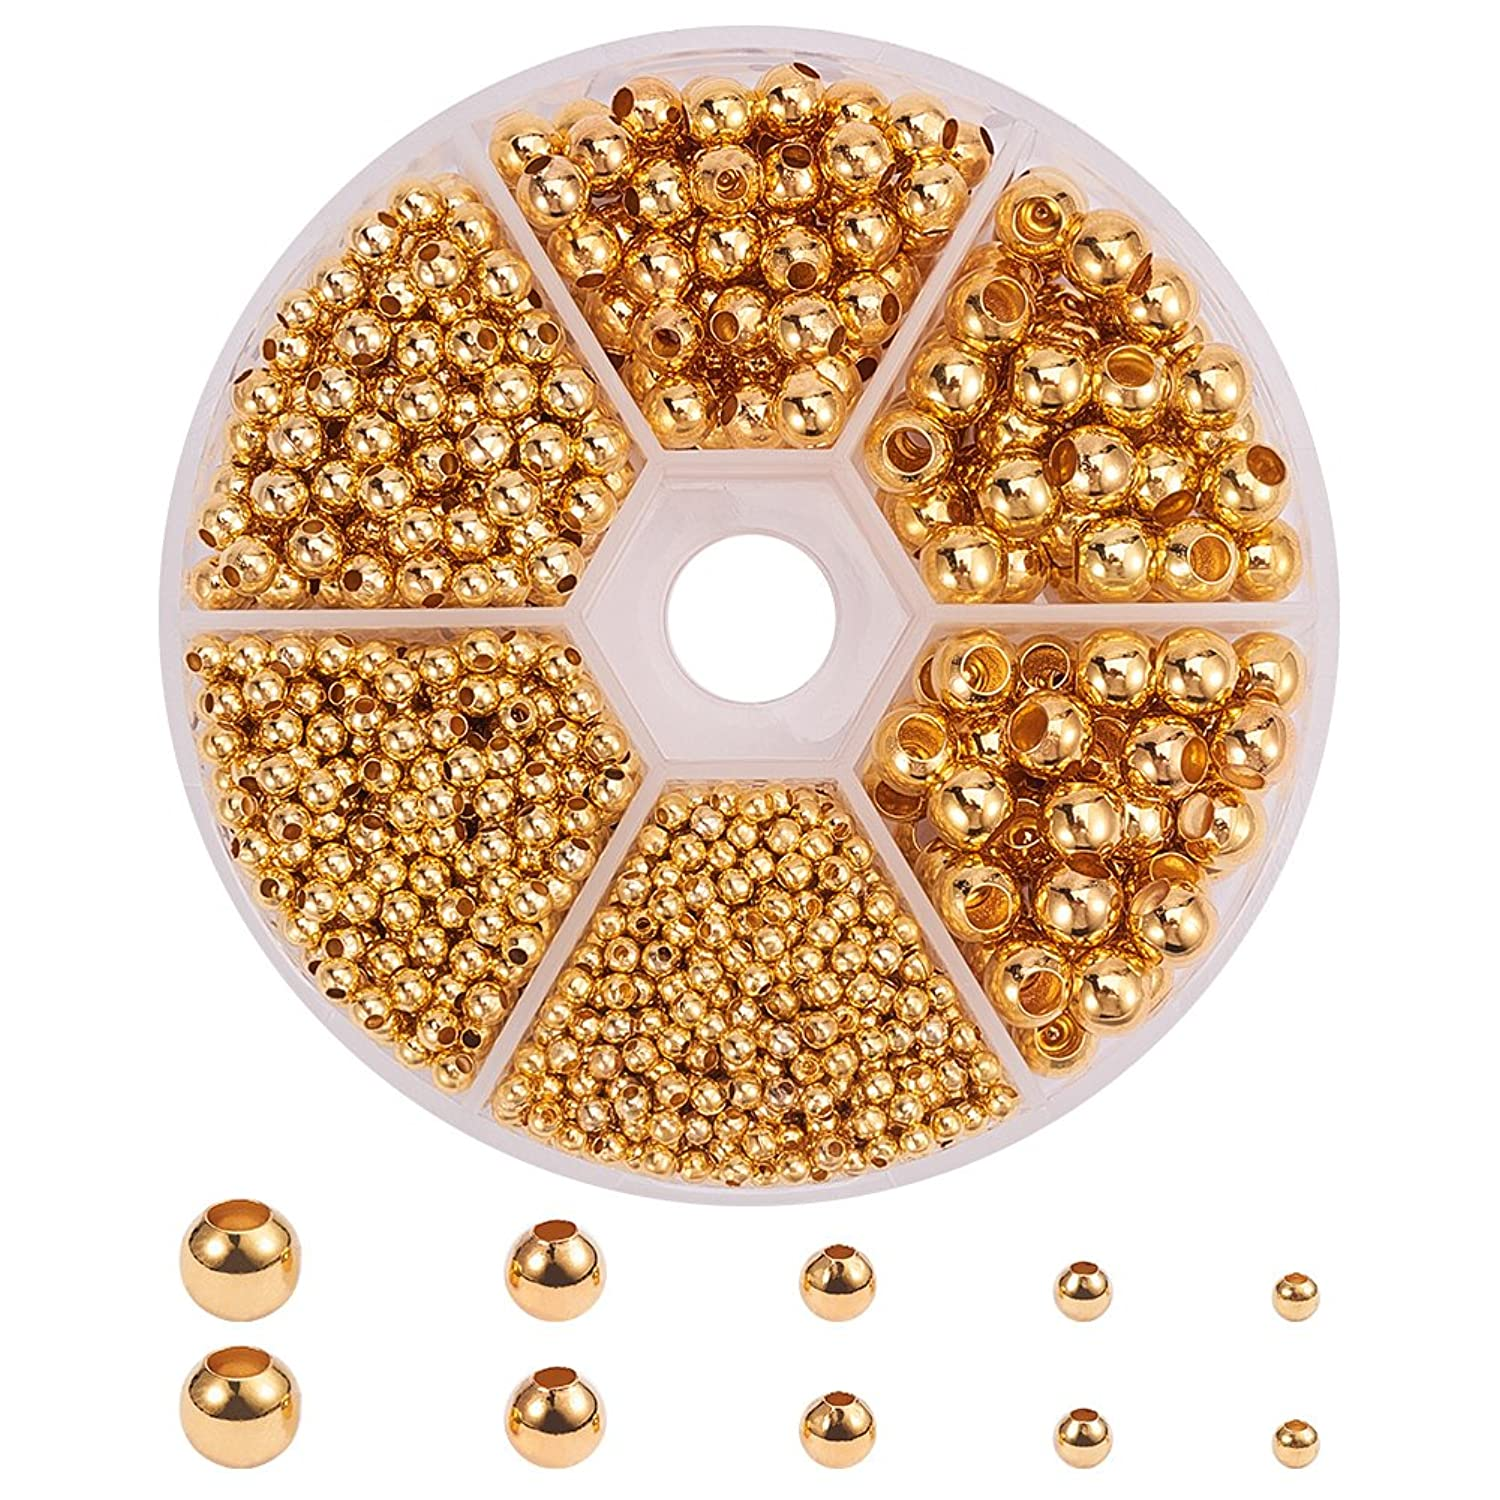 PH PandaHall 1 Box 1430 PCS 5 Size Golden Brass Smooth Round Bead Spacers Jewelry Findings Accessories for Bracelet Necklace Jewelry Making